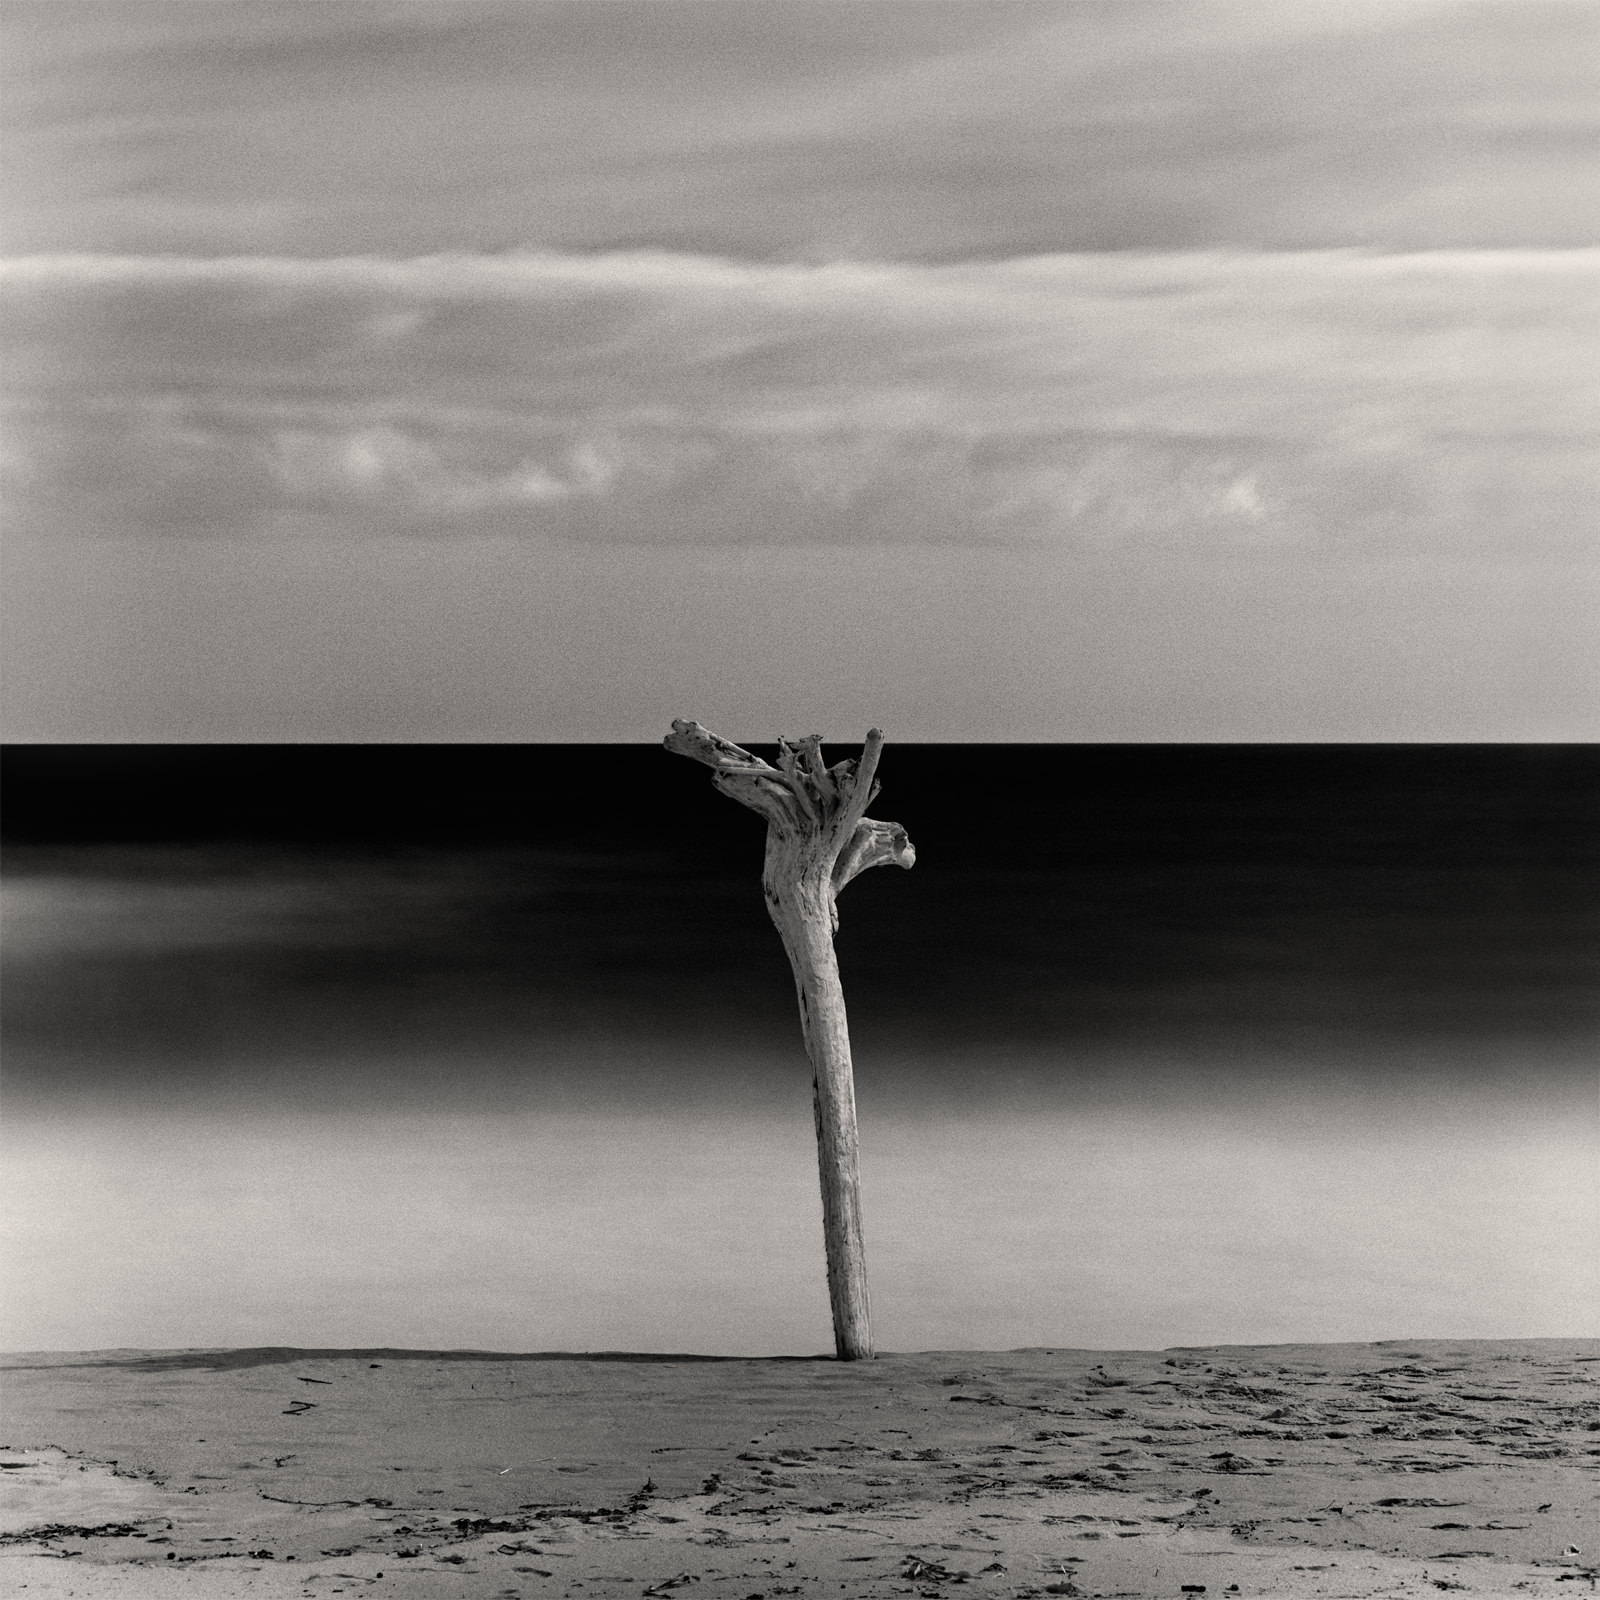 Minimalist long exposure seascape daytime photo with dramatic sky, smooth water and dead tree on sandy beach, black-white archival fine art print for sale